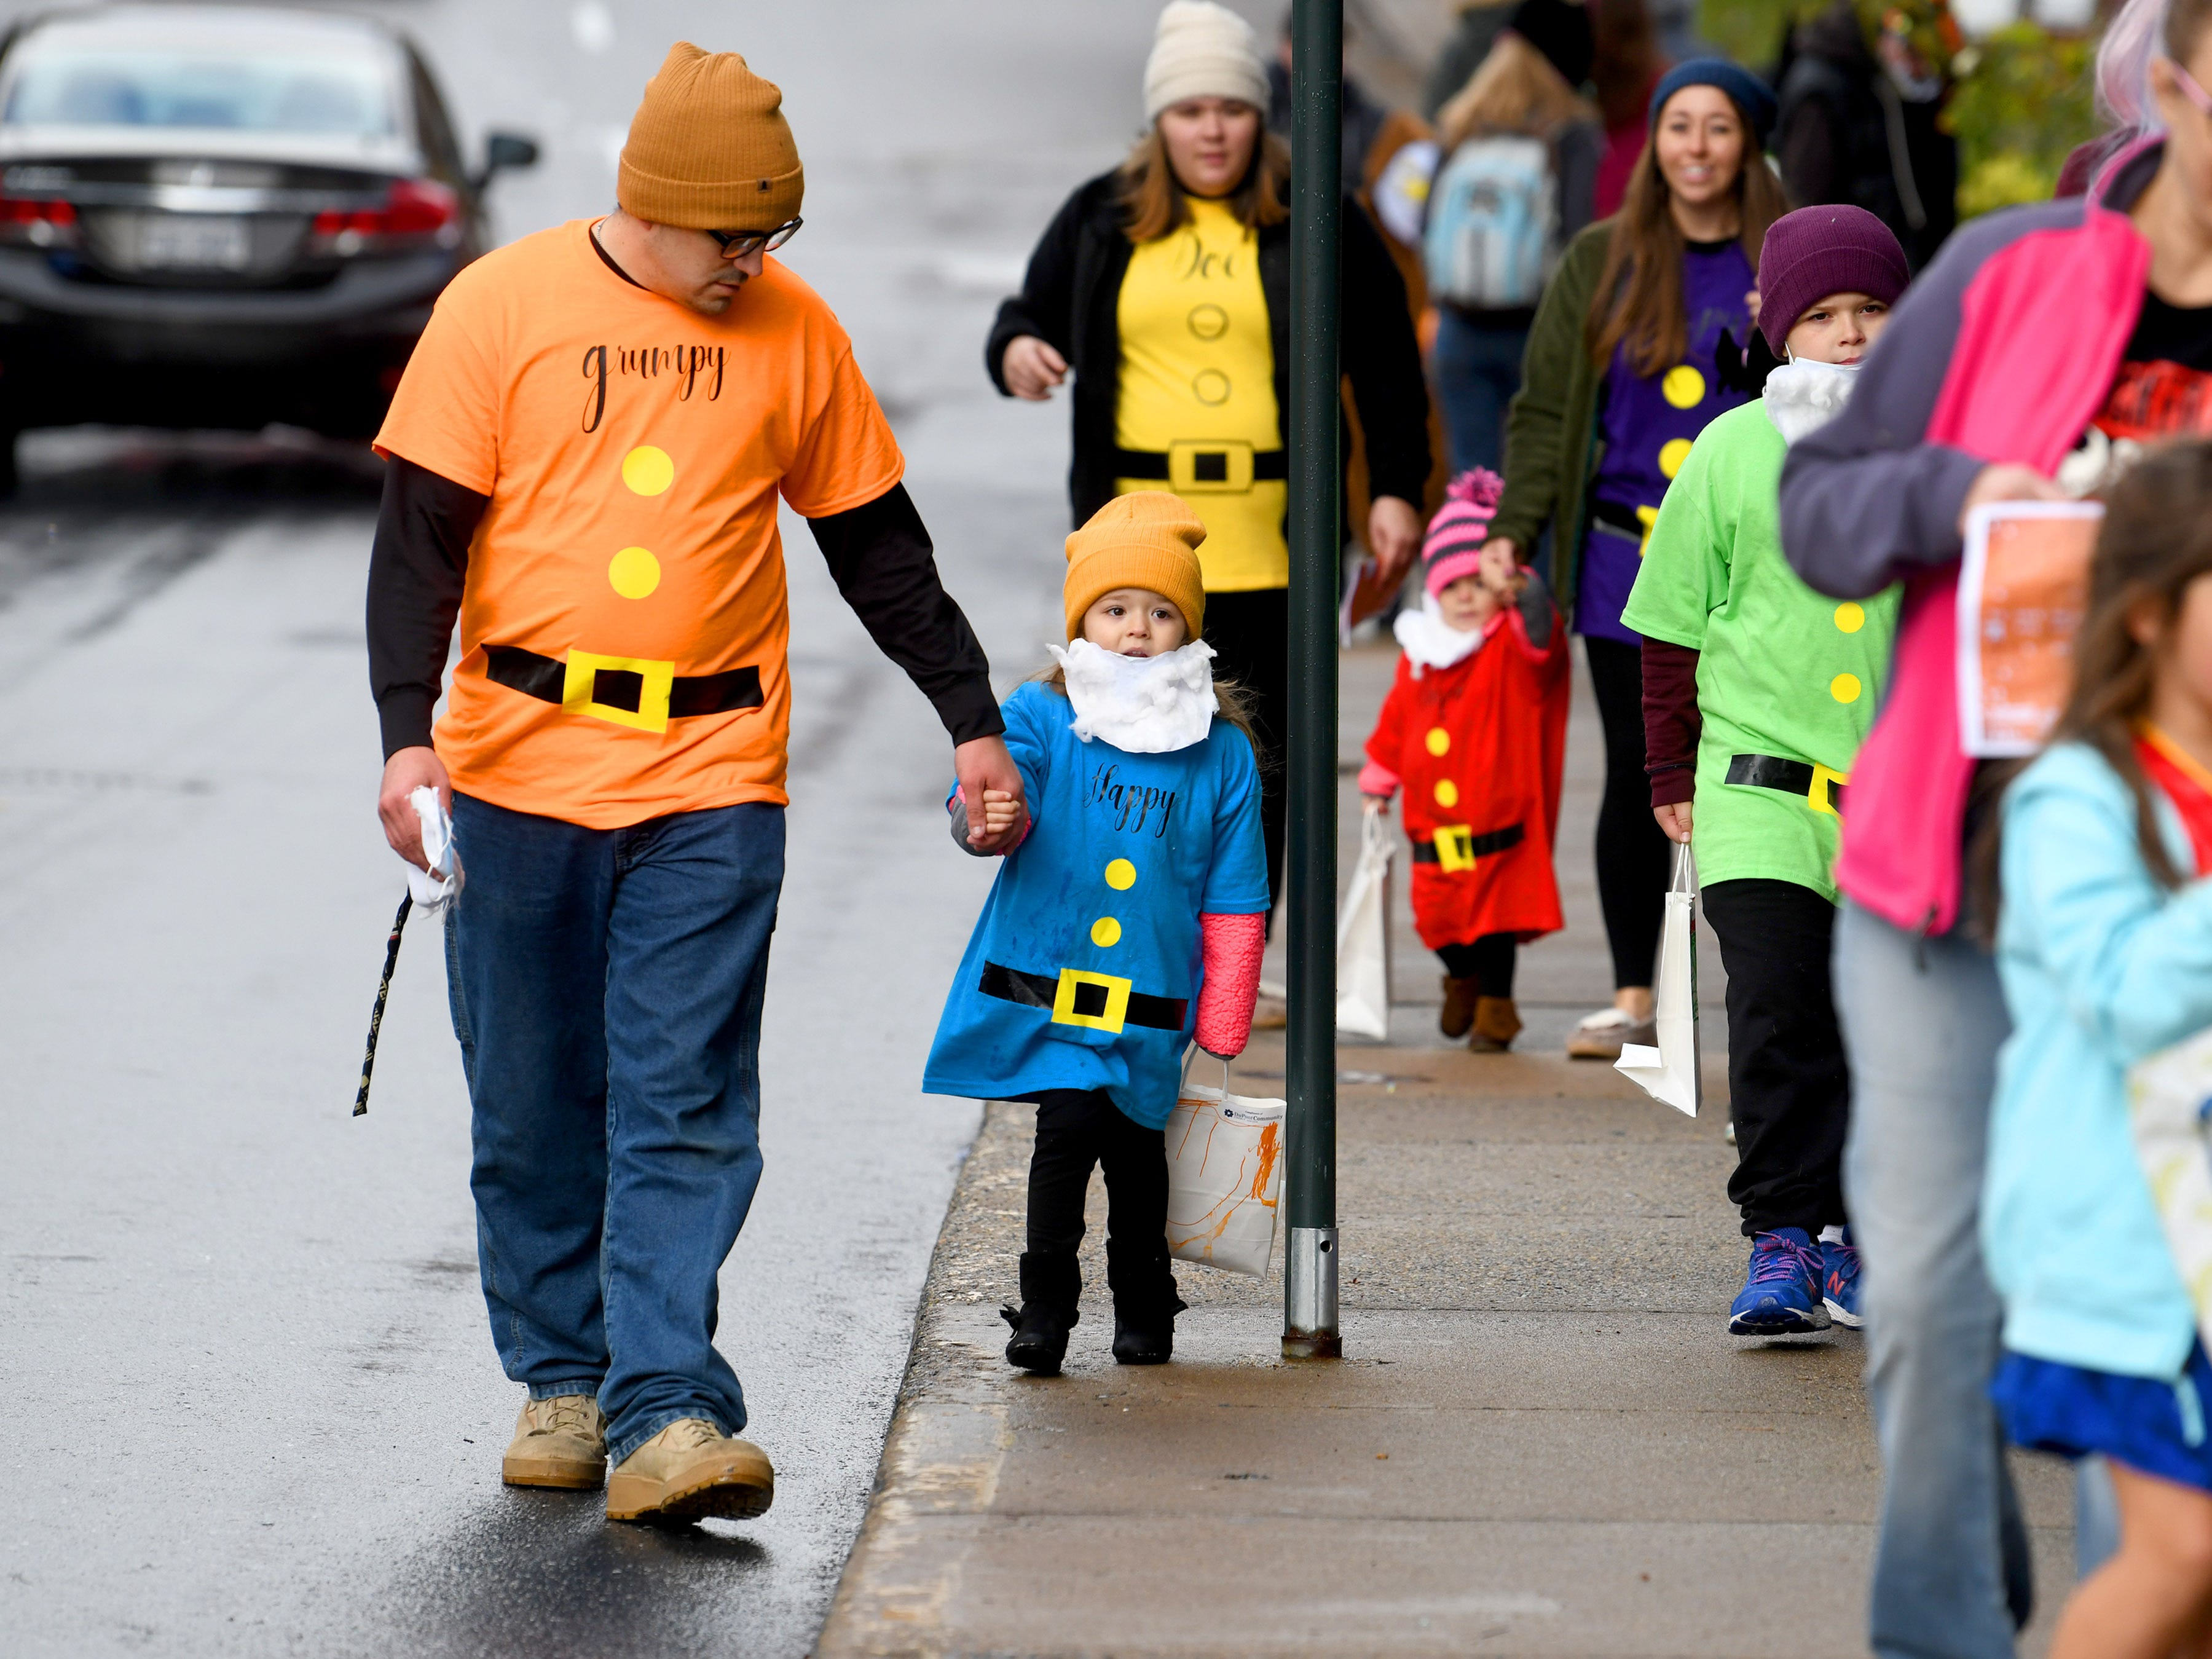 Several of the dwarves from Snow White and the Seven Dwarves trick-or-treat together during the annual downtown trick-or-treating event in Staunton on Saturday, Oct. 27, 2018.